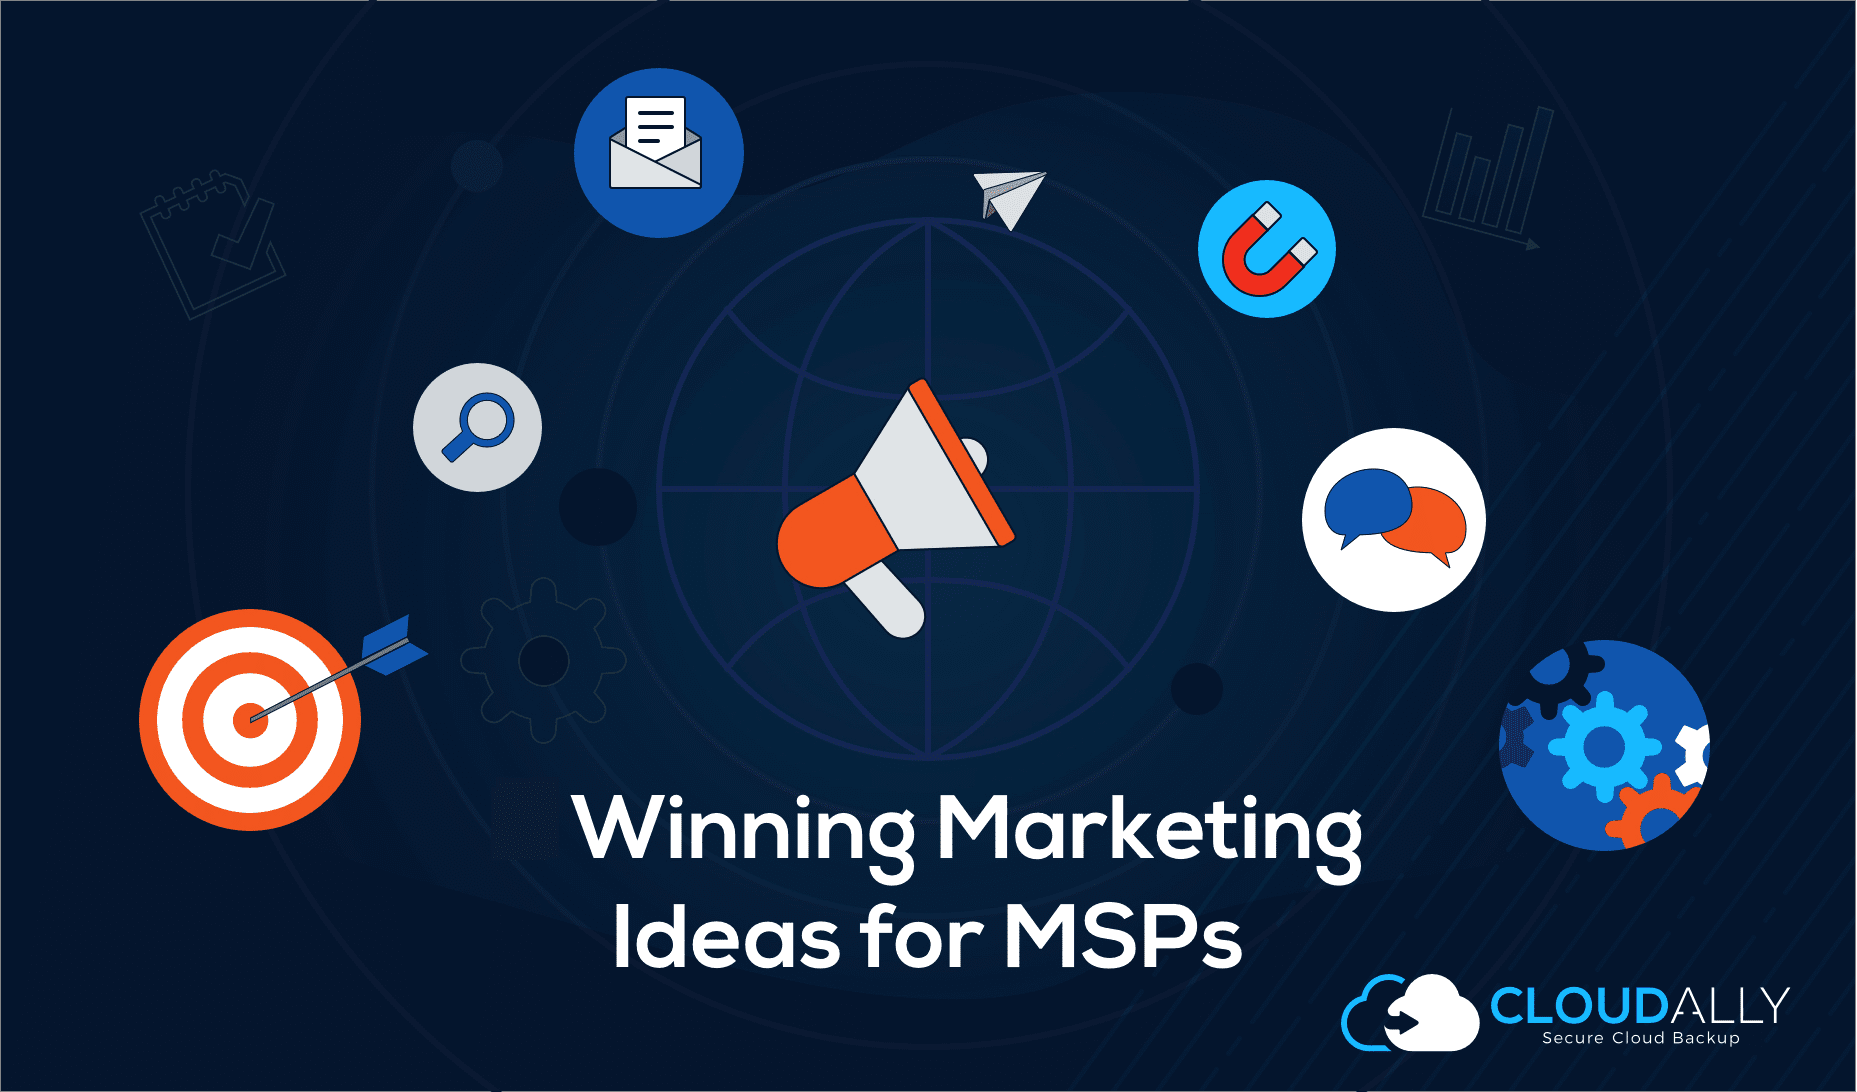 Marketing Ideas for MSPs